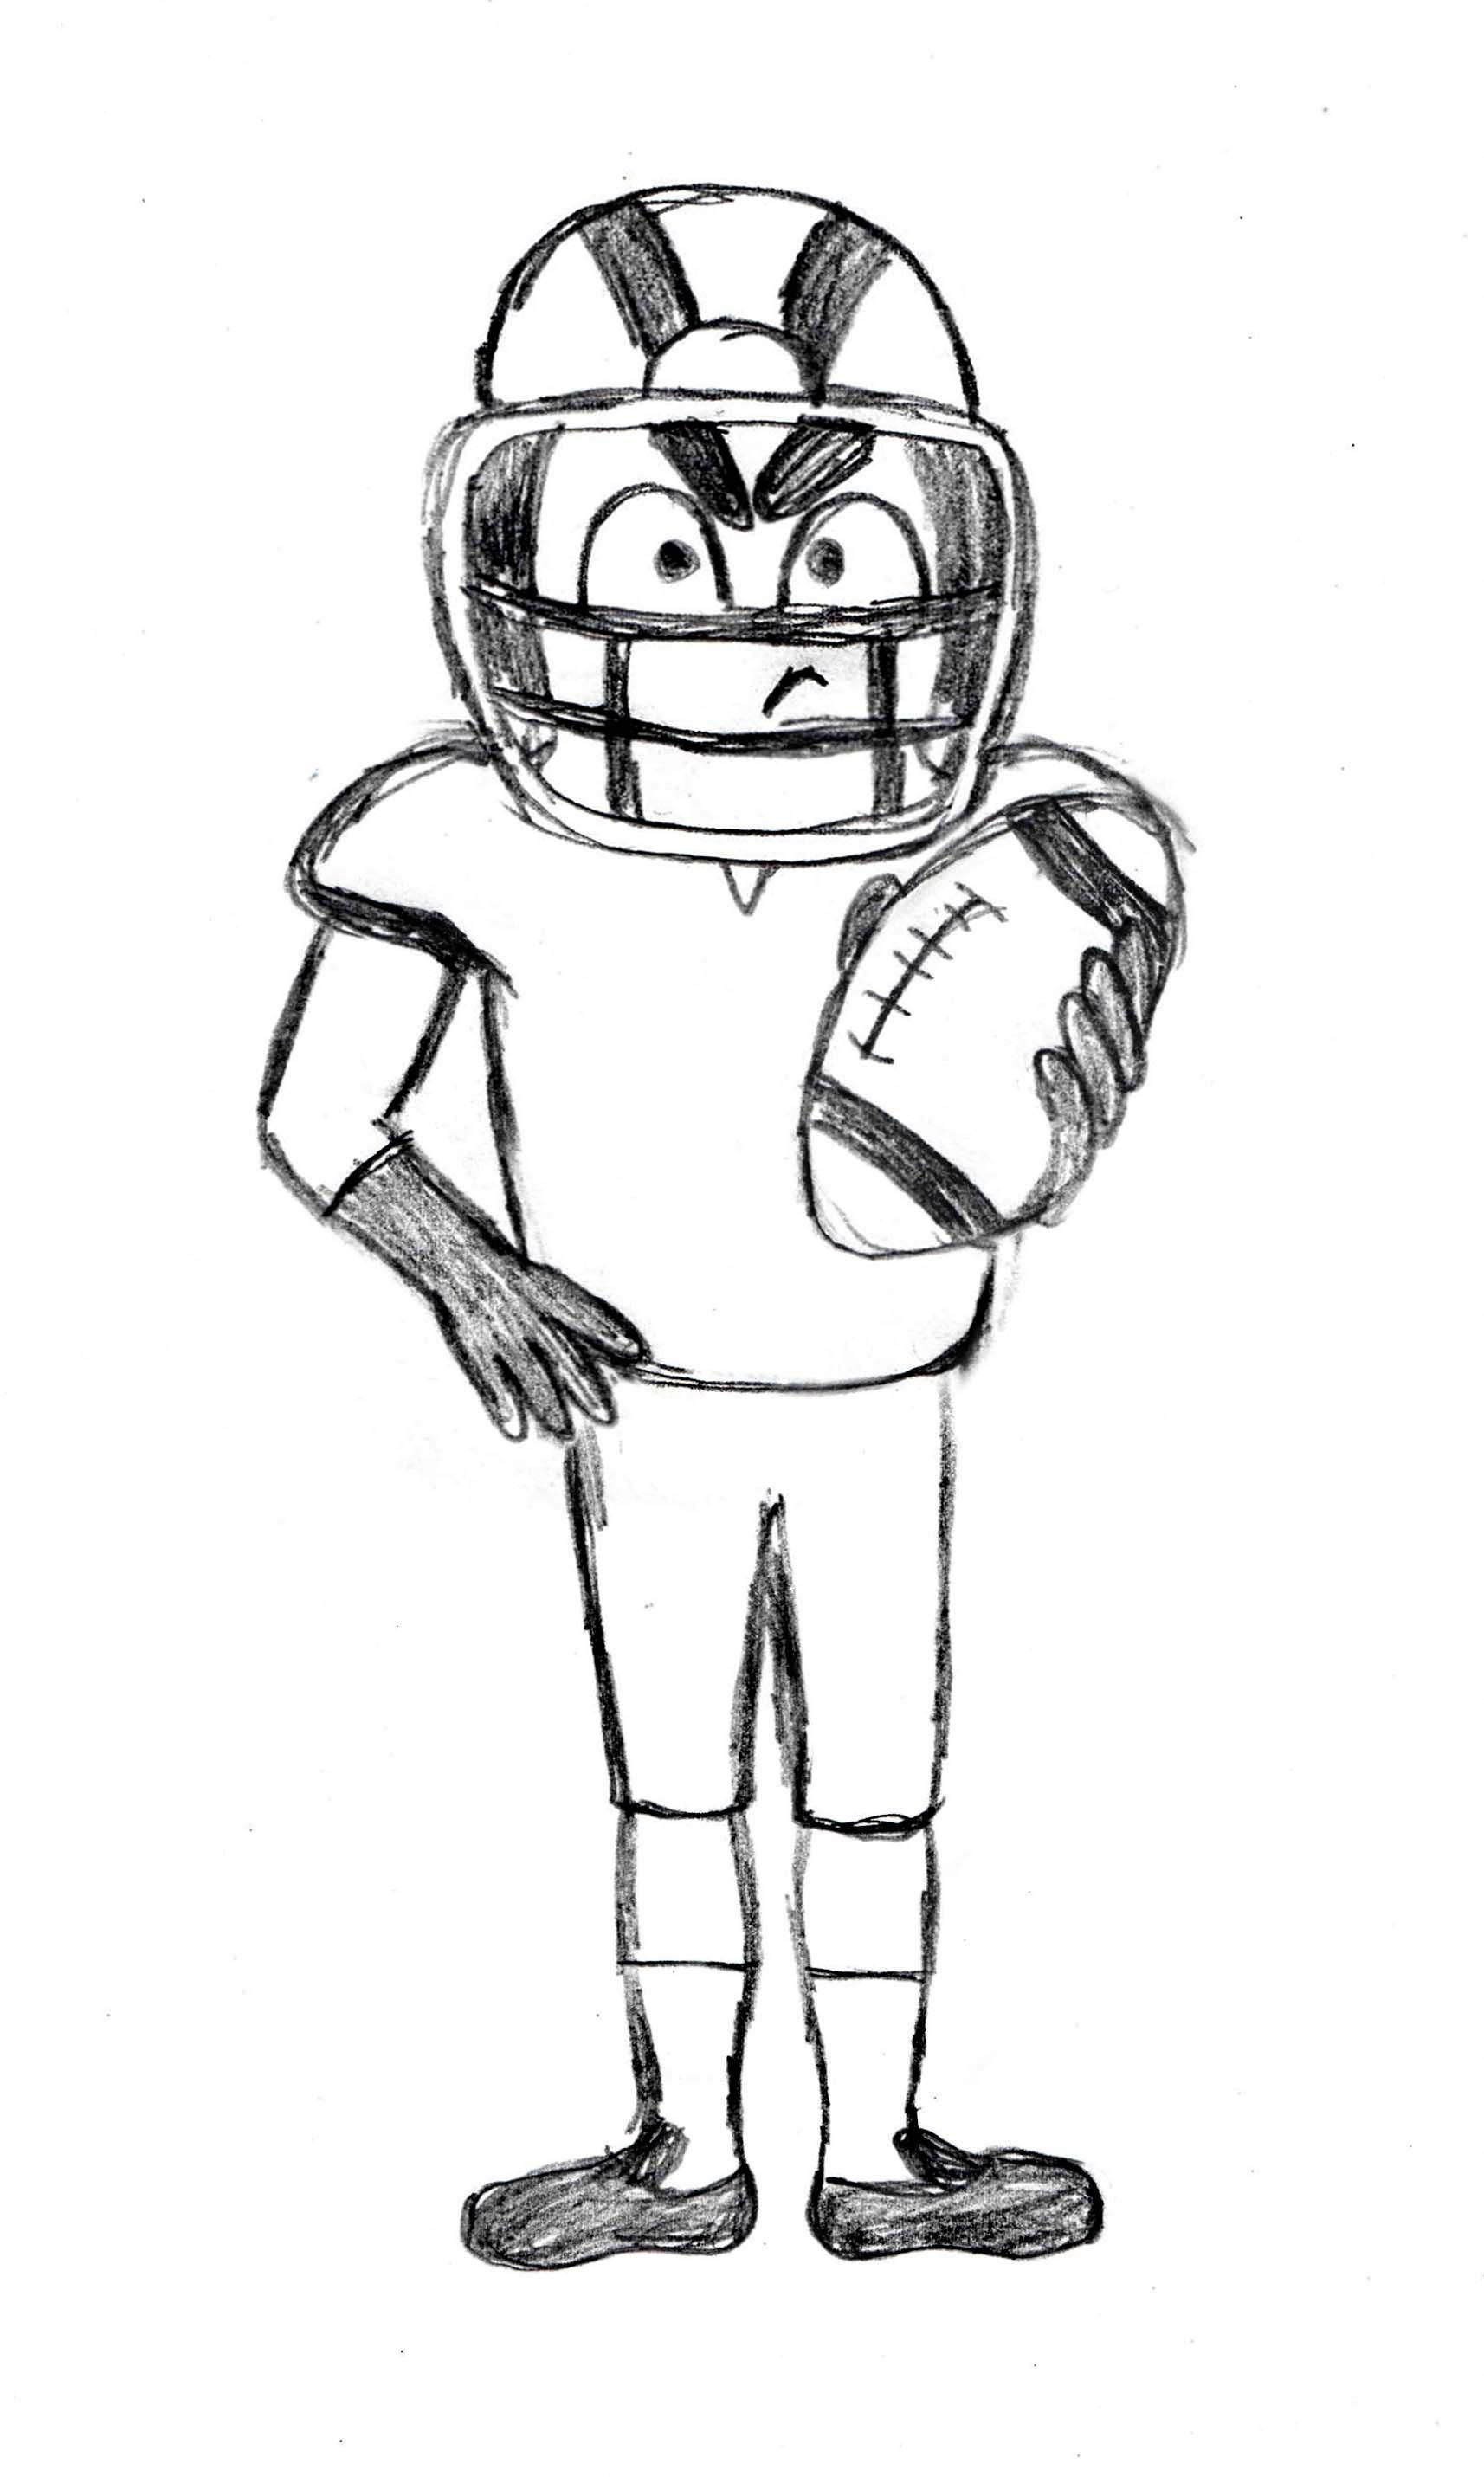 Easyfootballetips football player drawing american football players step by step drawing easy